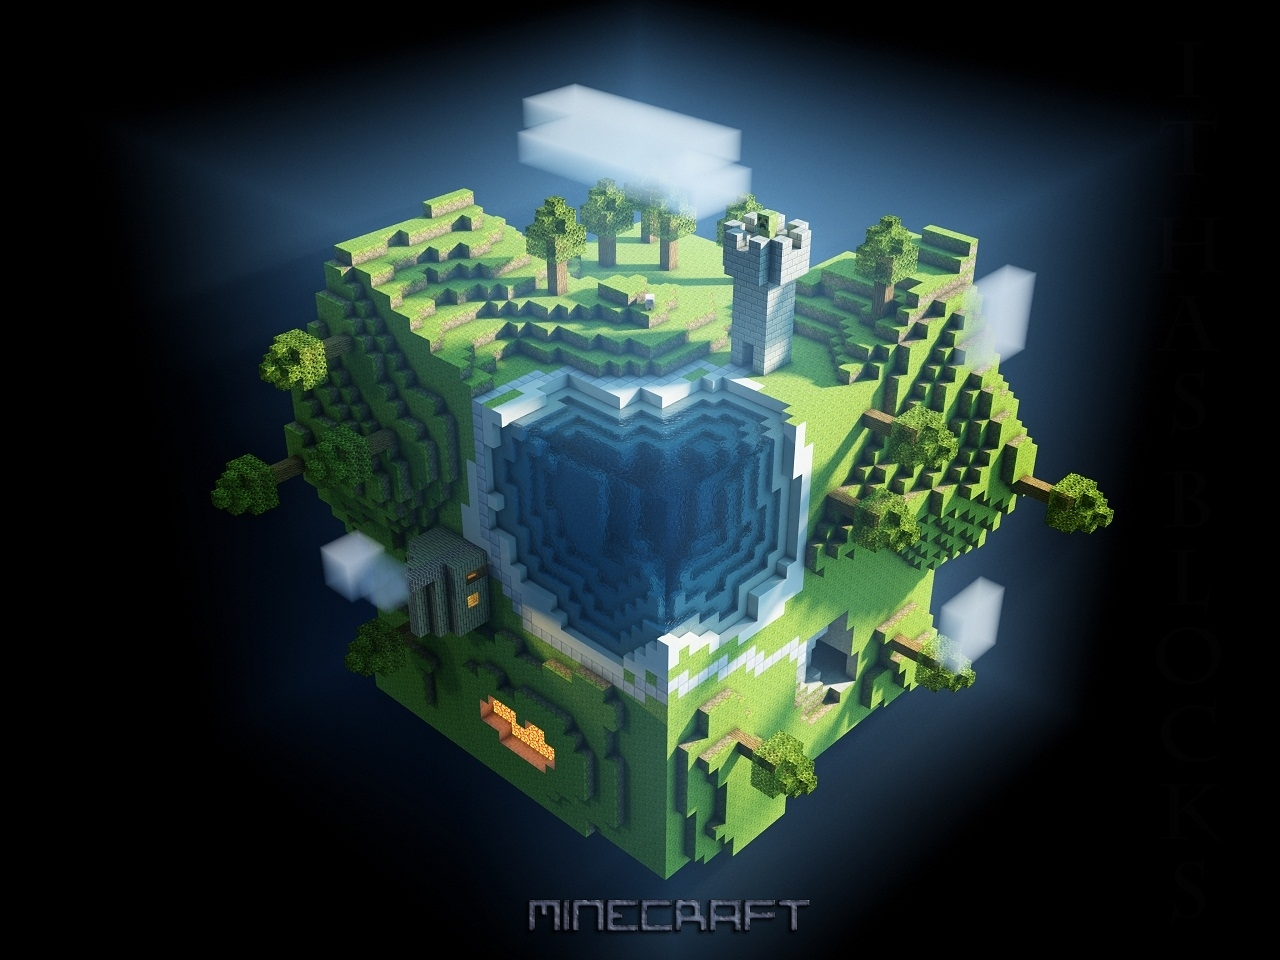 awesome minecraft wallpapers | minecraft | pinterest | minecraft